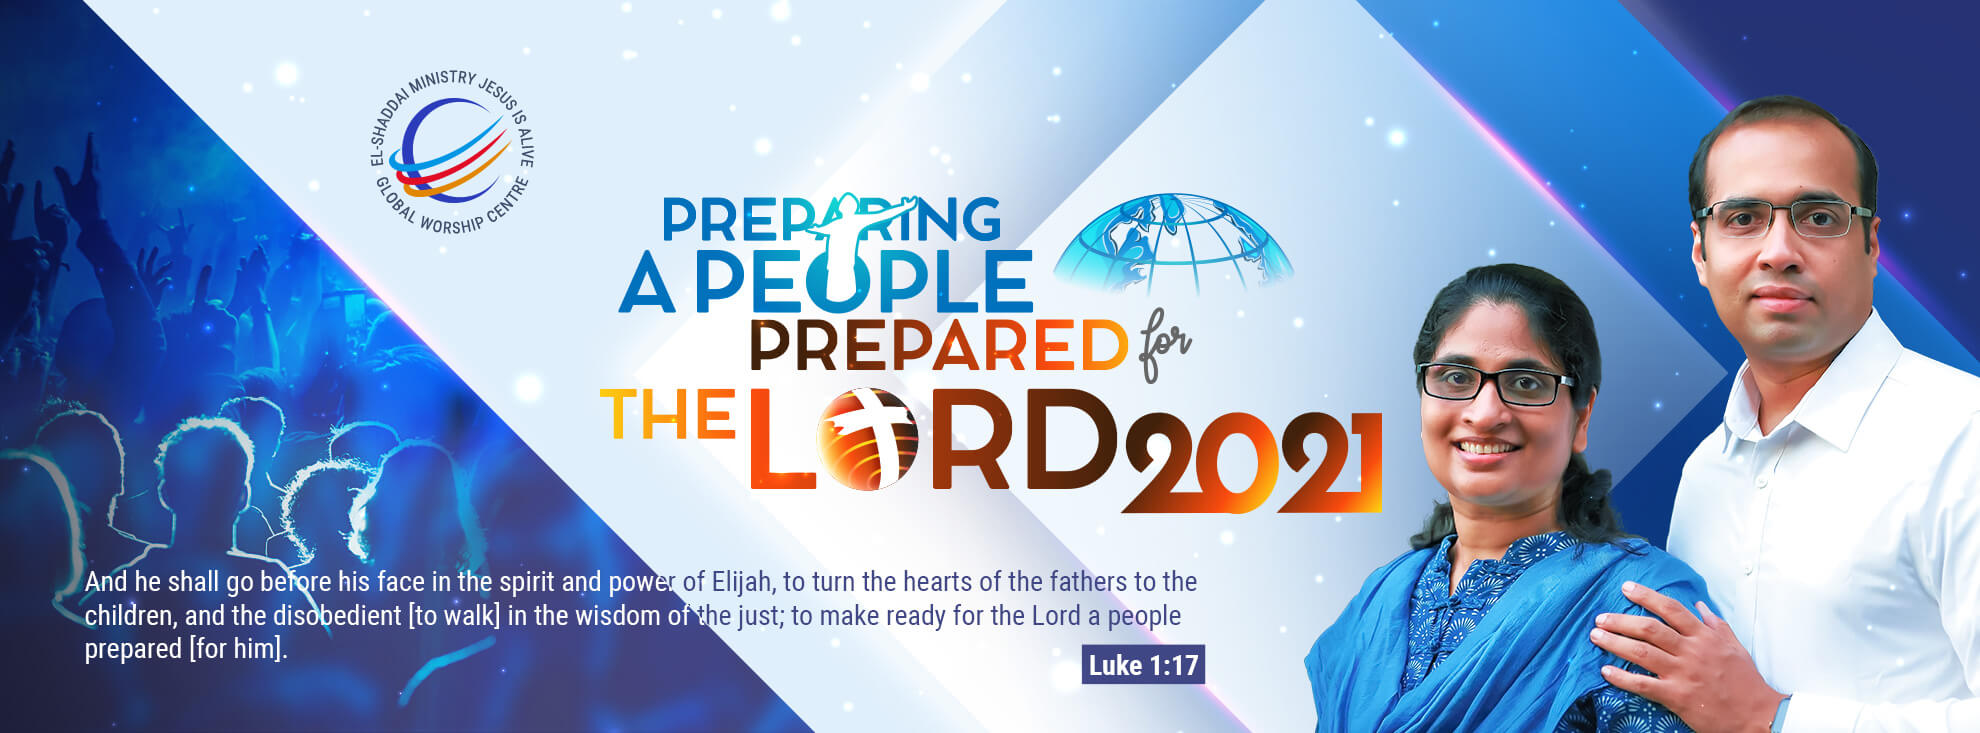 Preparing a People prepared for the Lord 2021